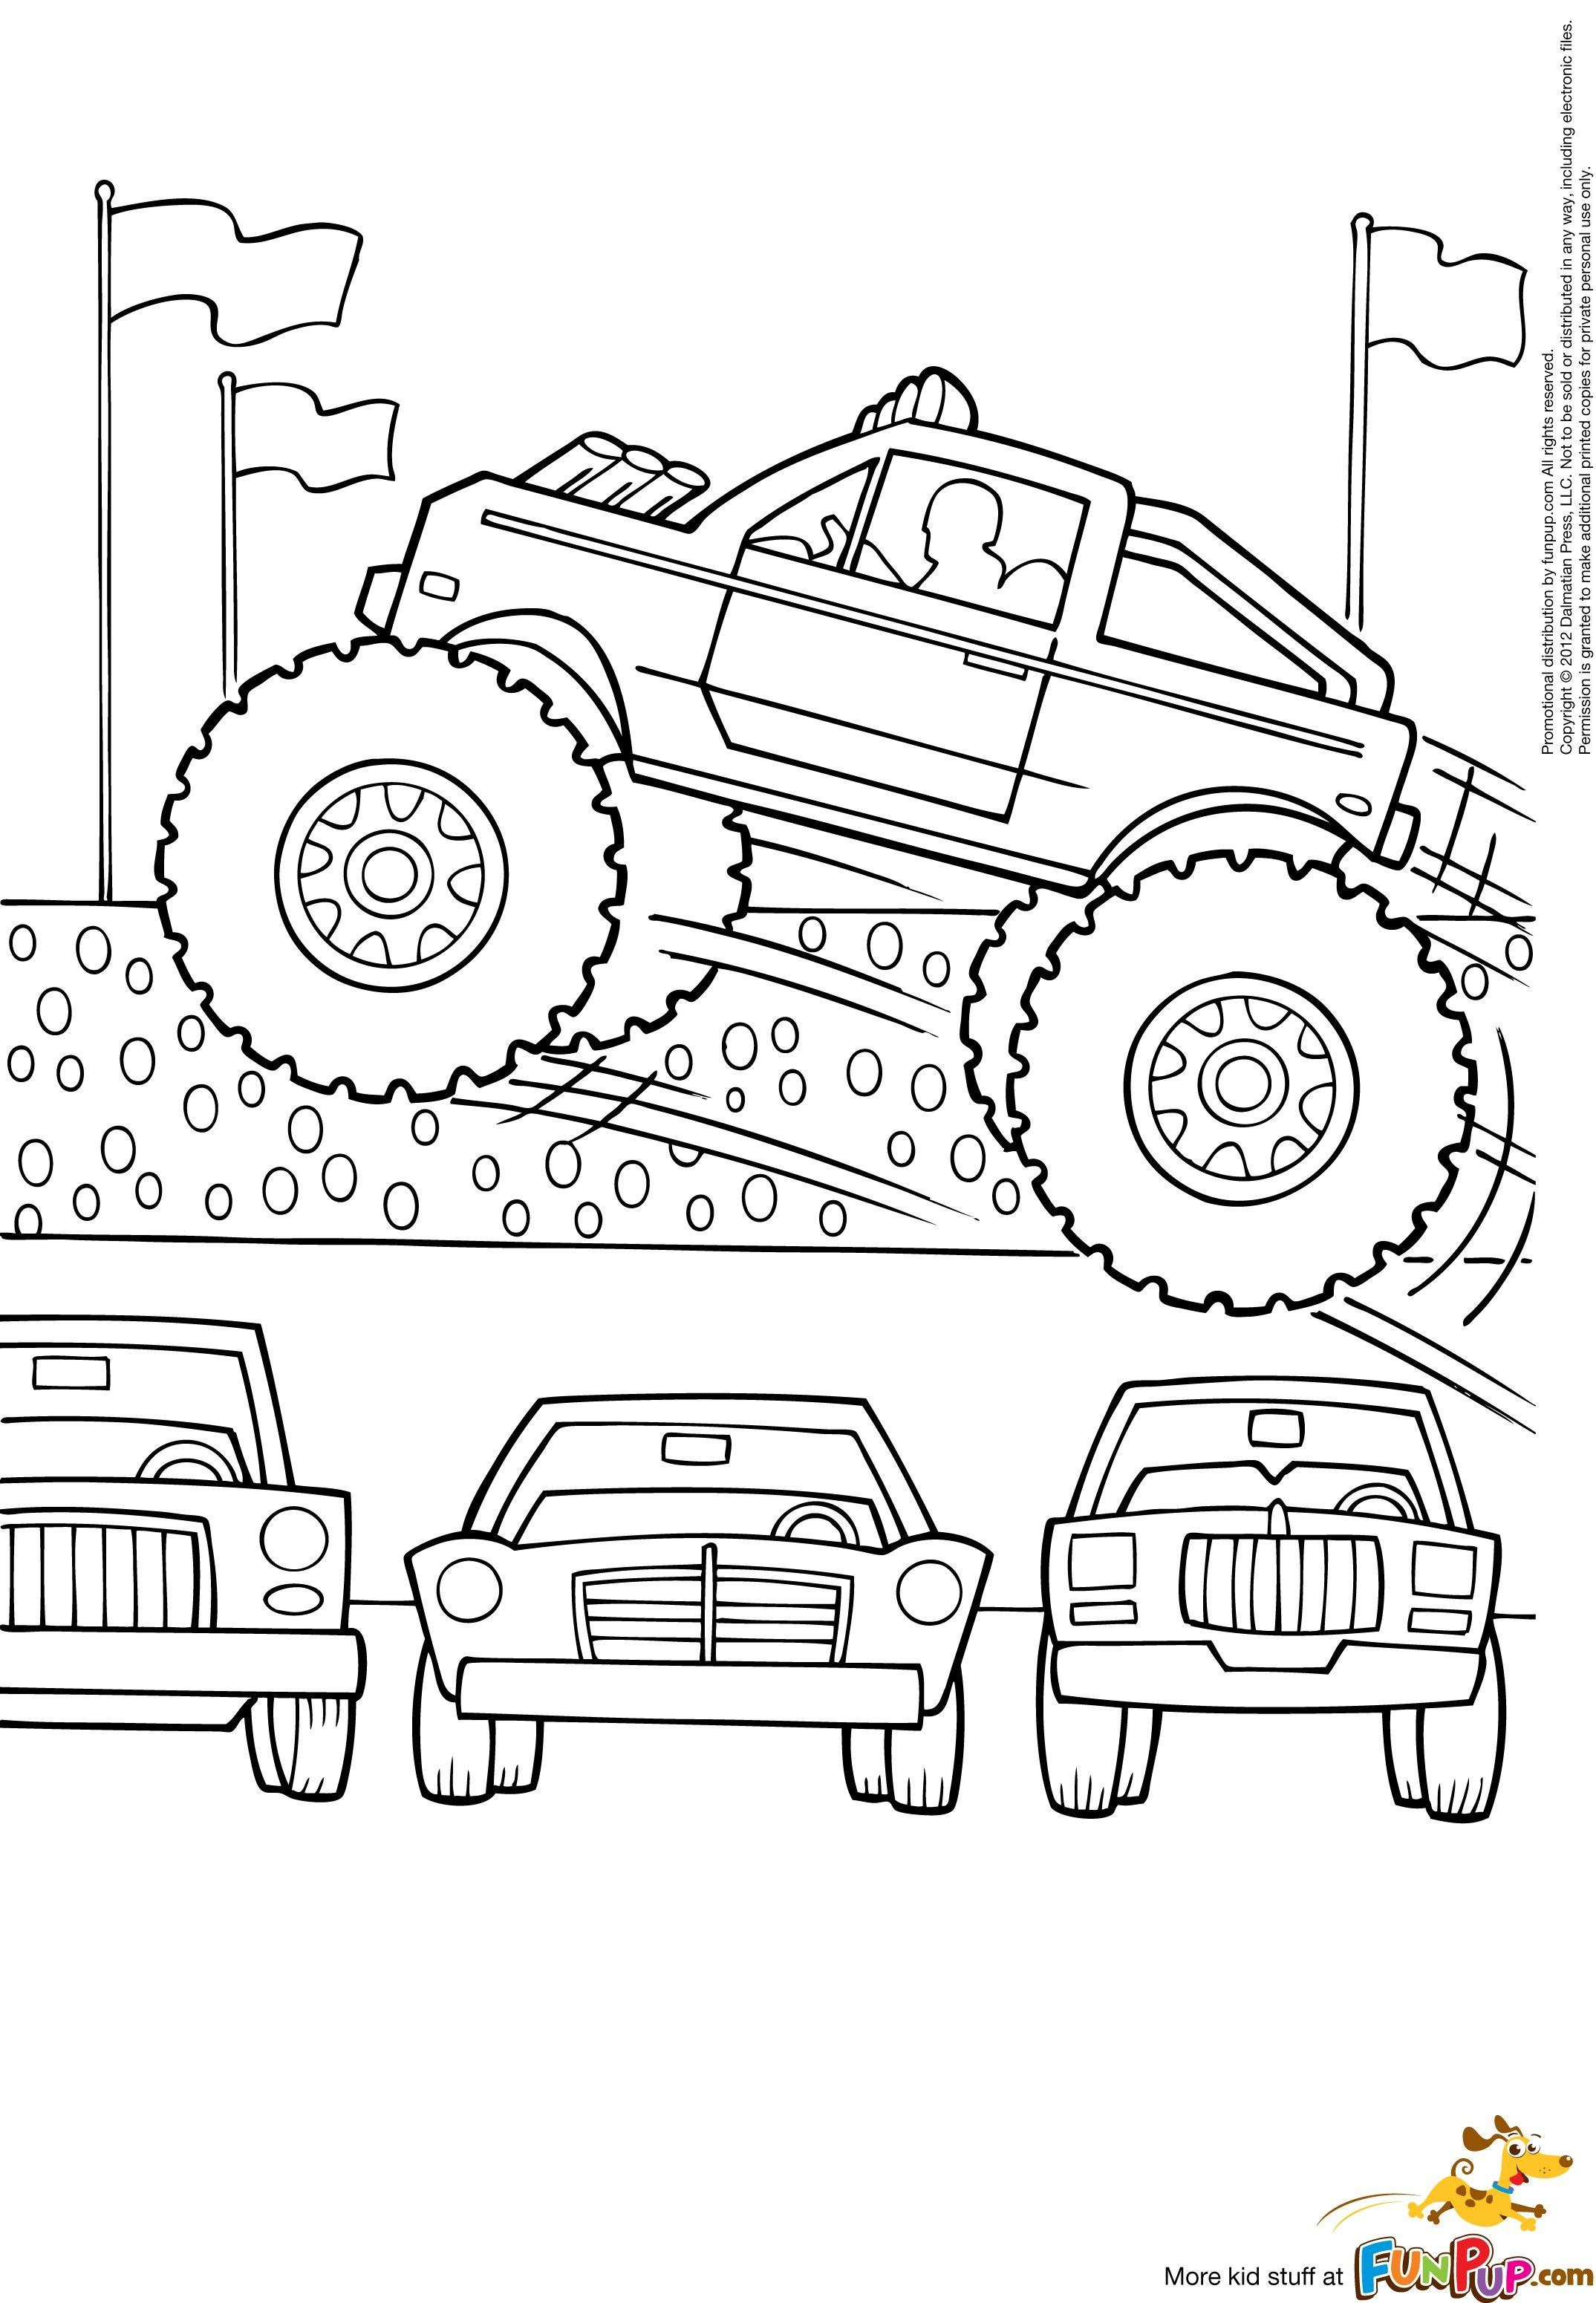 monster jam 2013 coloring pages - photo#19